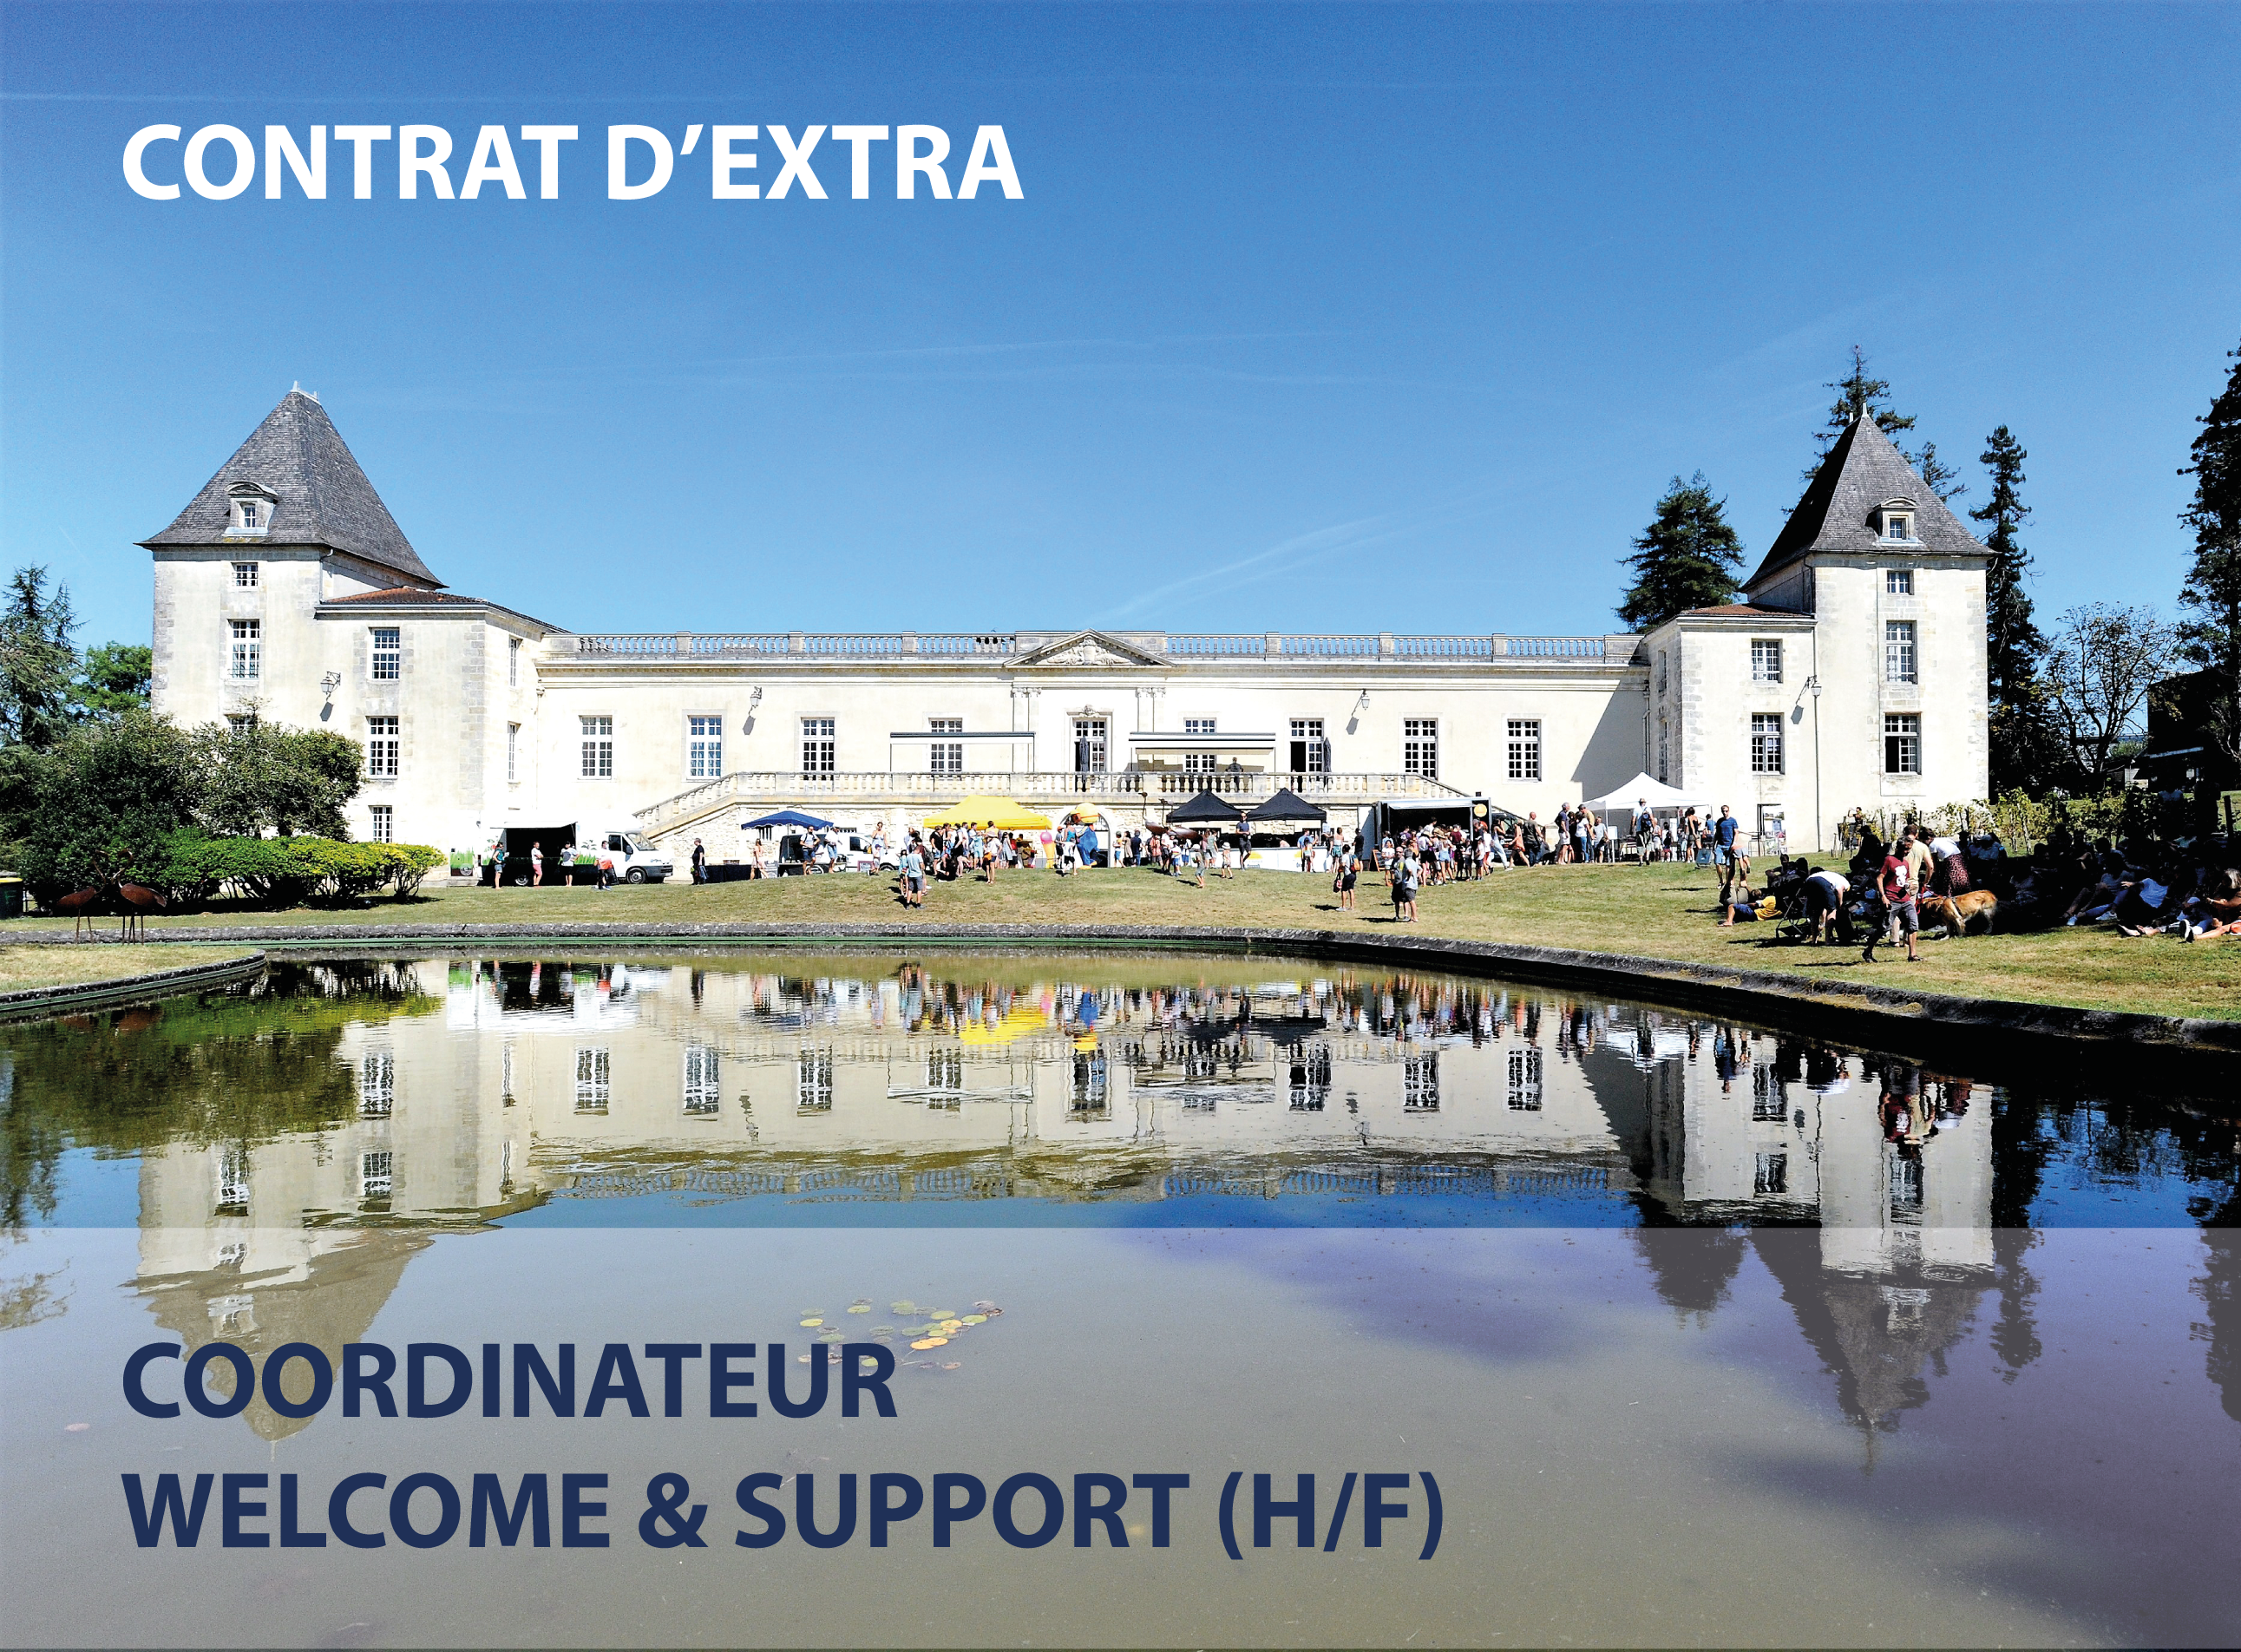 CONTRAT D'EXTRA – COORDINATEUR WELCOME & SUPPORT (H/F)